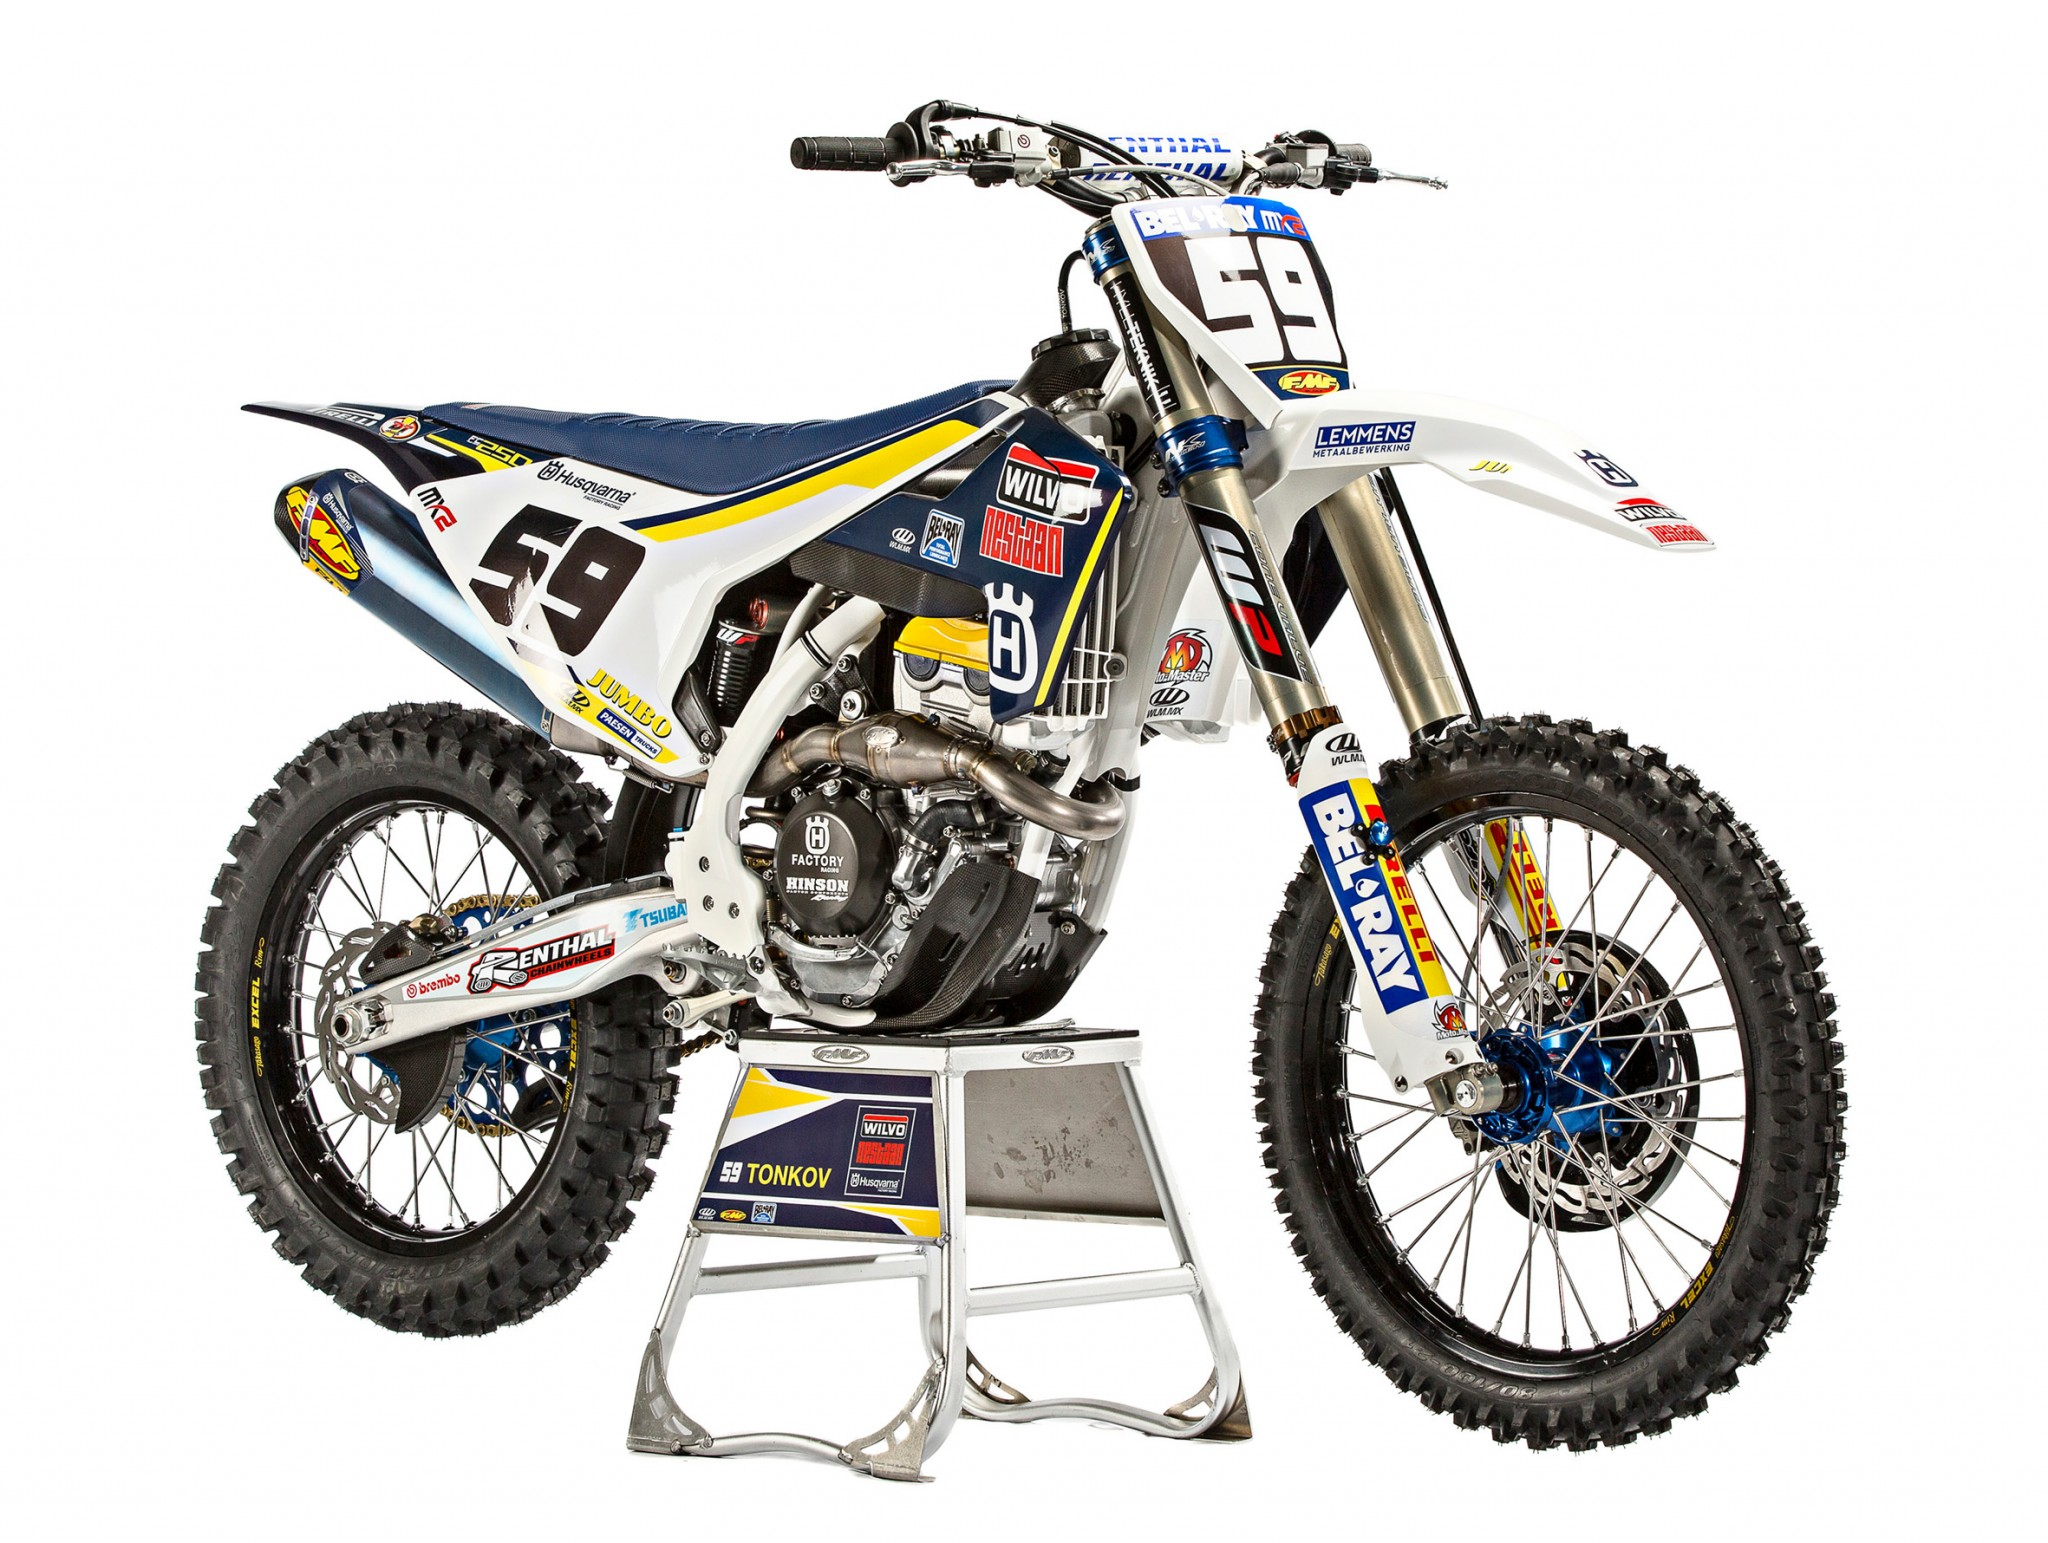 Aleksandr Tonkov's Factory Racing Husqvarna FC250 - First Look: New Husqvarna Factory ...